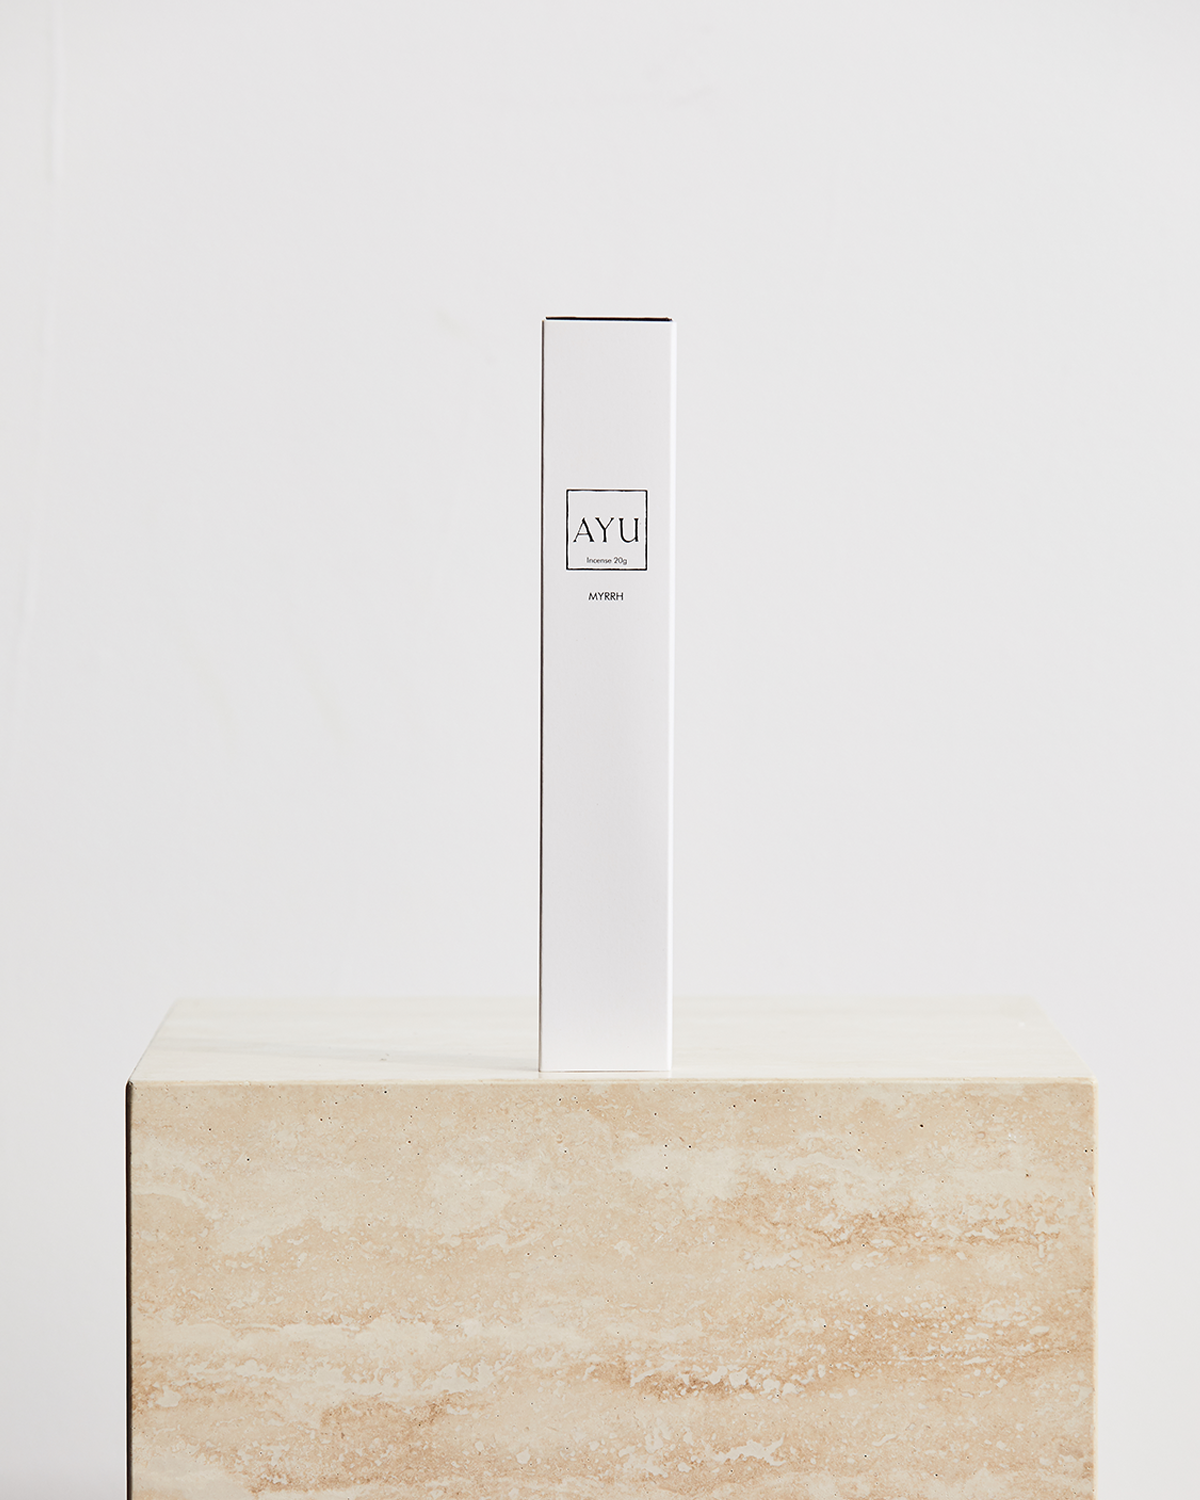 Ayu Myrrh Incense Sticks